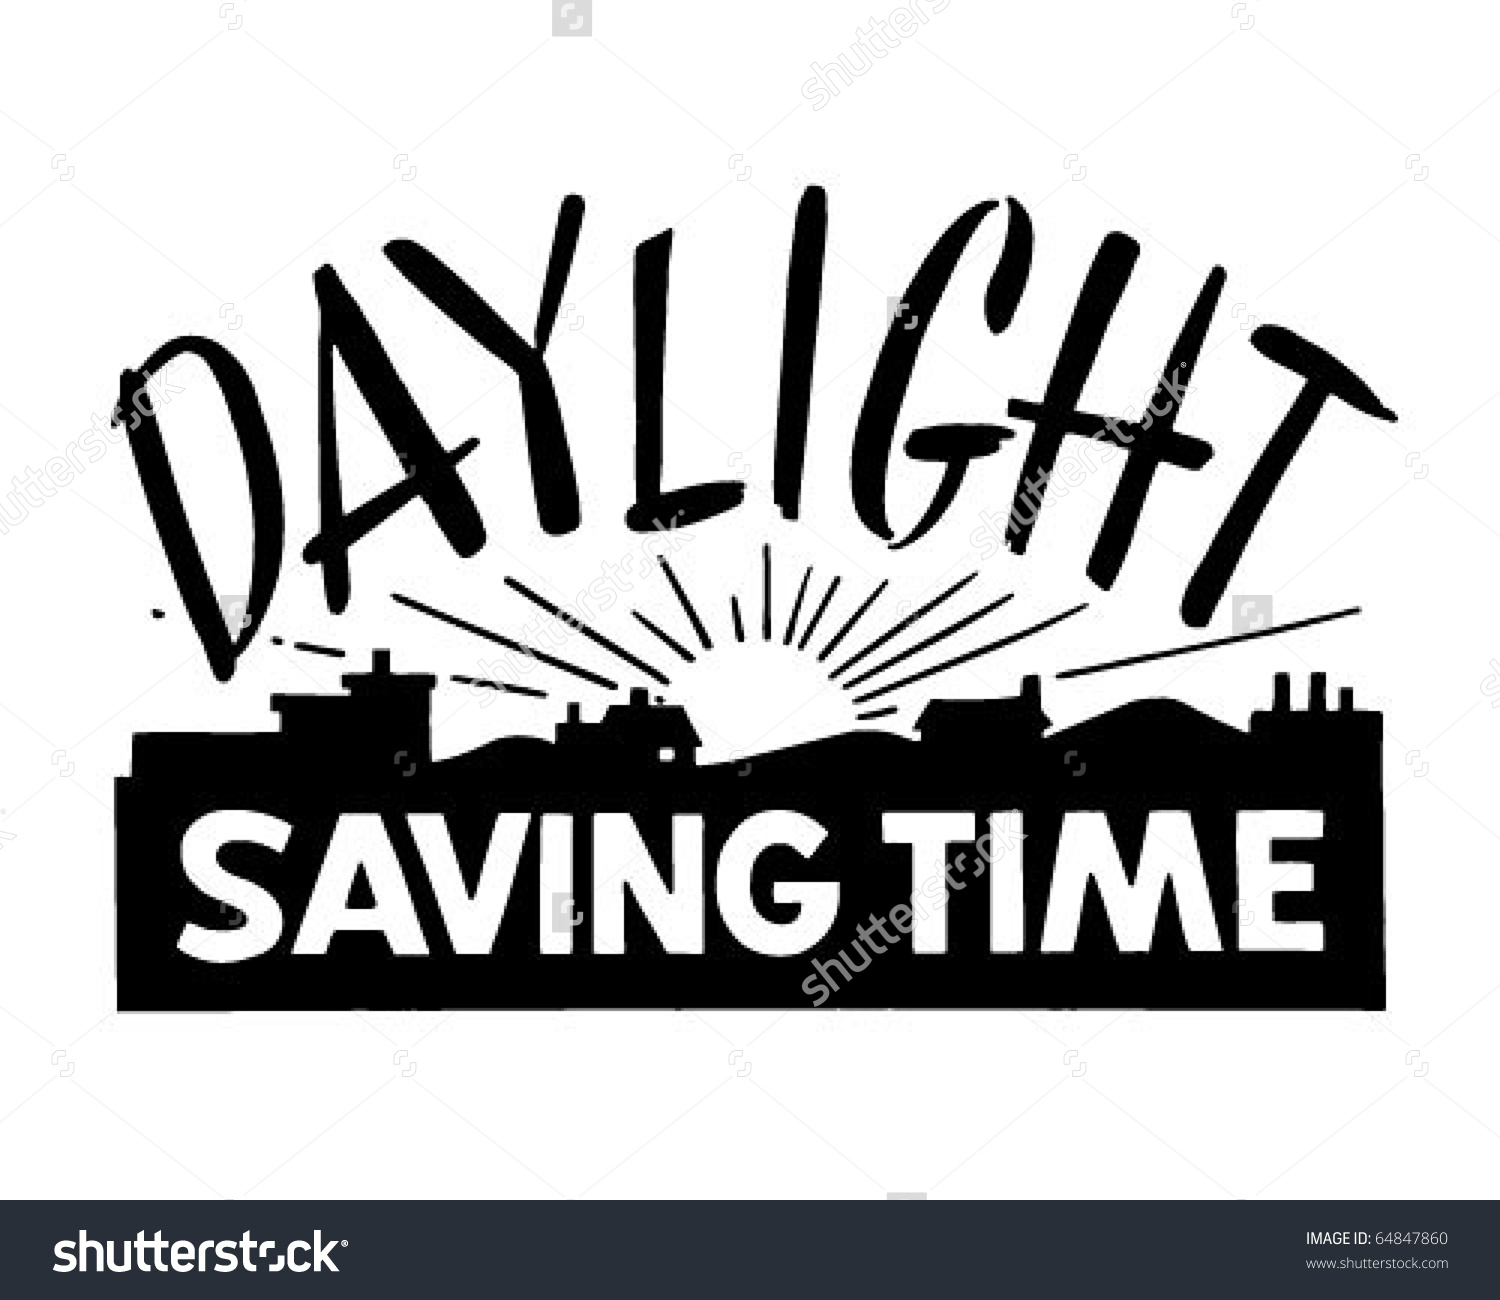 Daylight saving time clip art.